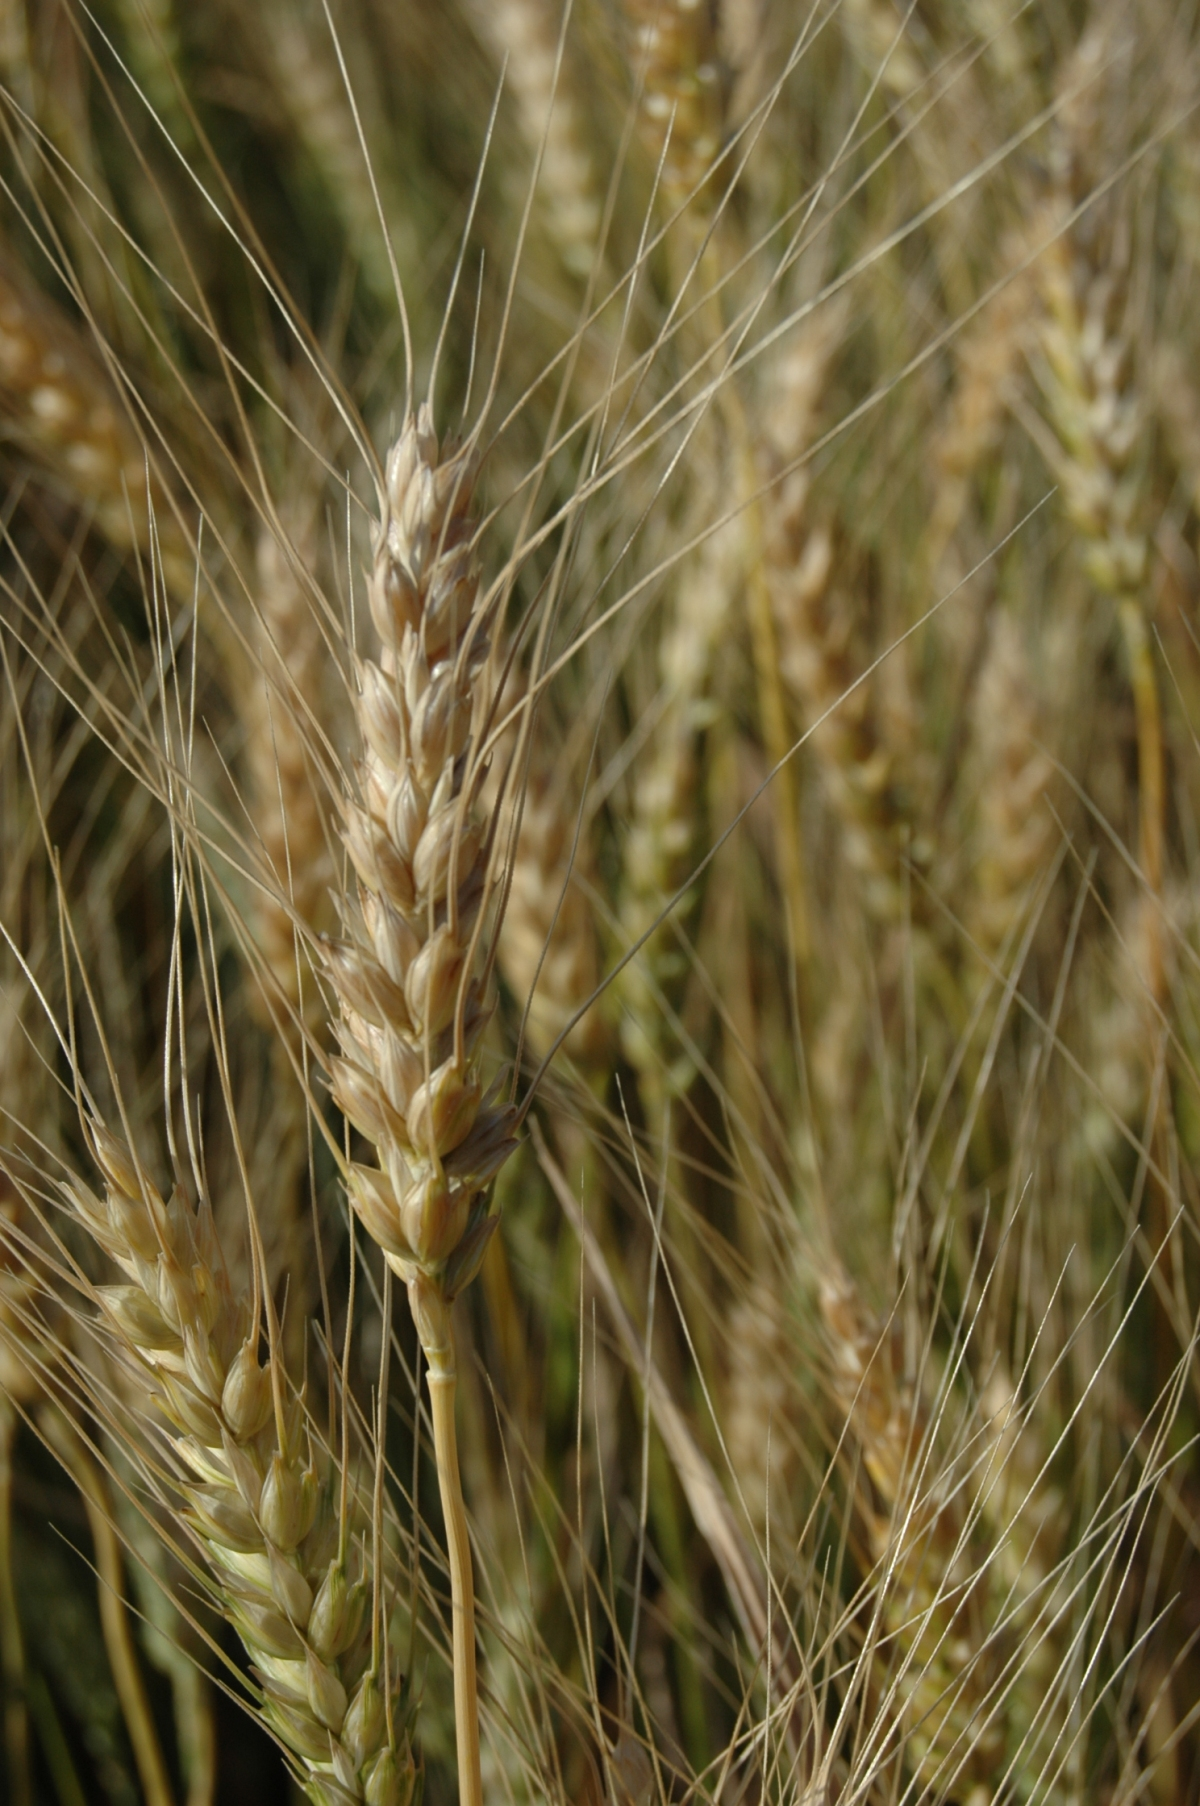 Wheat nearly ready for harvest at Safe Haven Farm - Haven, KS